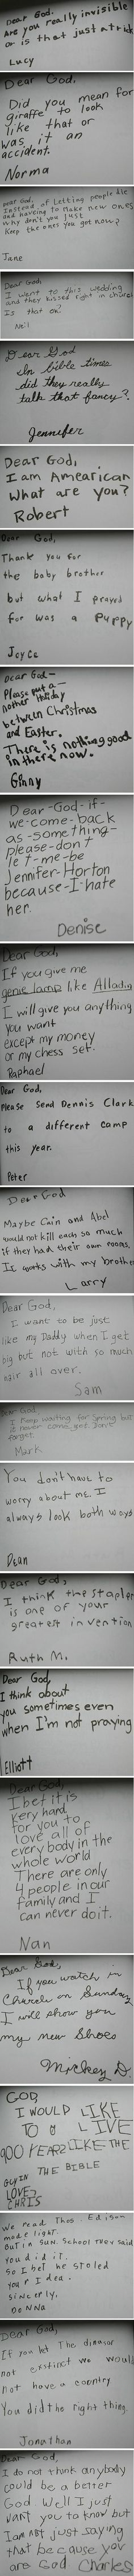 Kids' letters to God. Adorable + funny equals awesome.